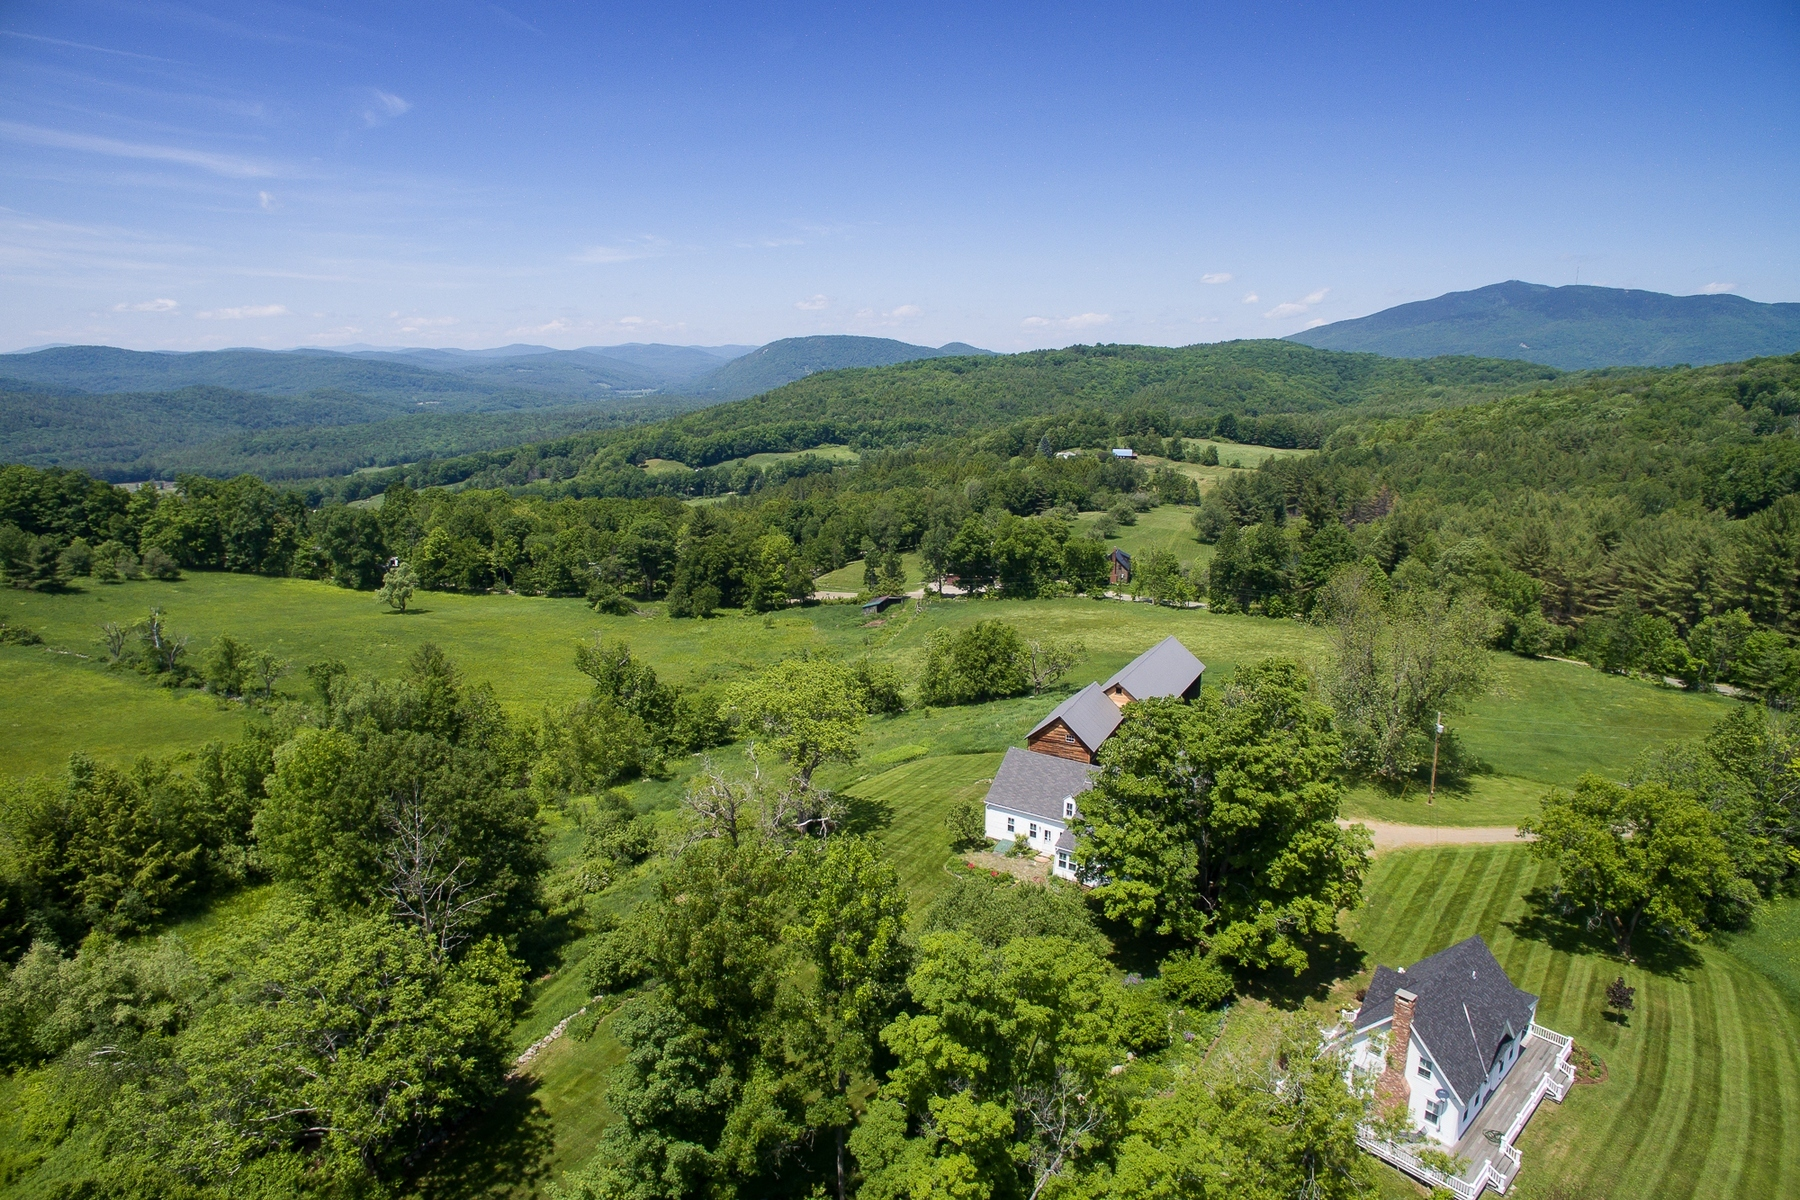 Single Family Home for Sale at Barnswallow Farm 70/71 Hoisington Weathersfield, Vermont 05151 United States